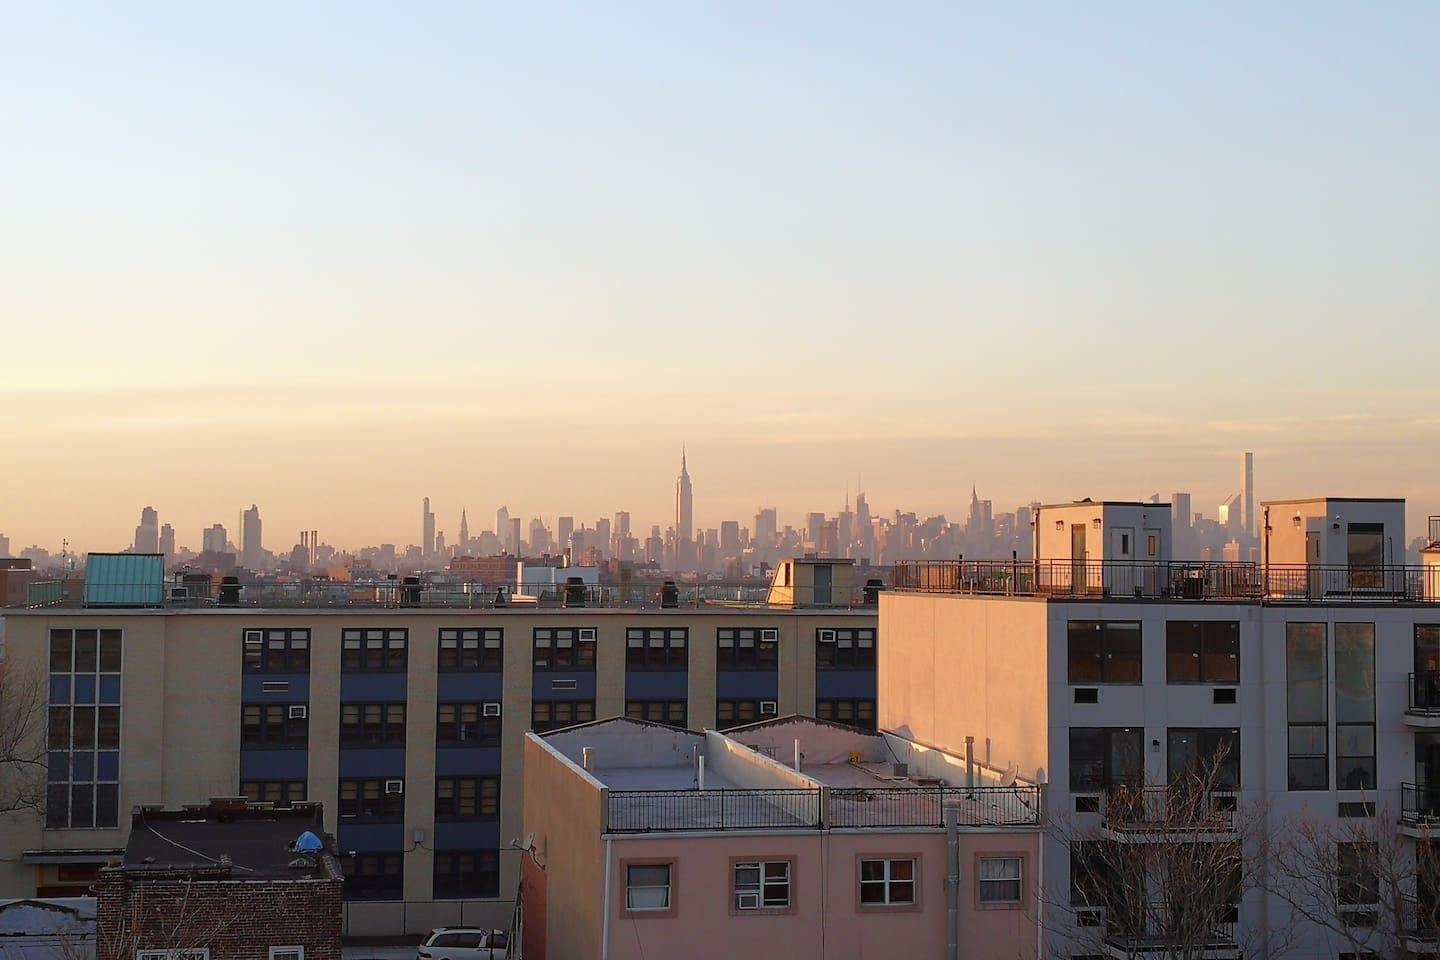 AMAZING view from our rooftop deck.